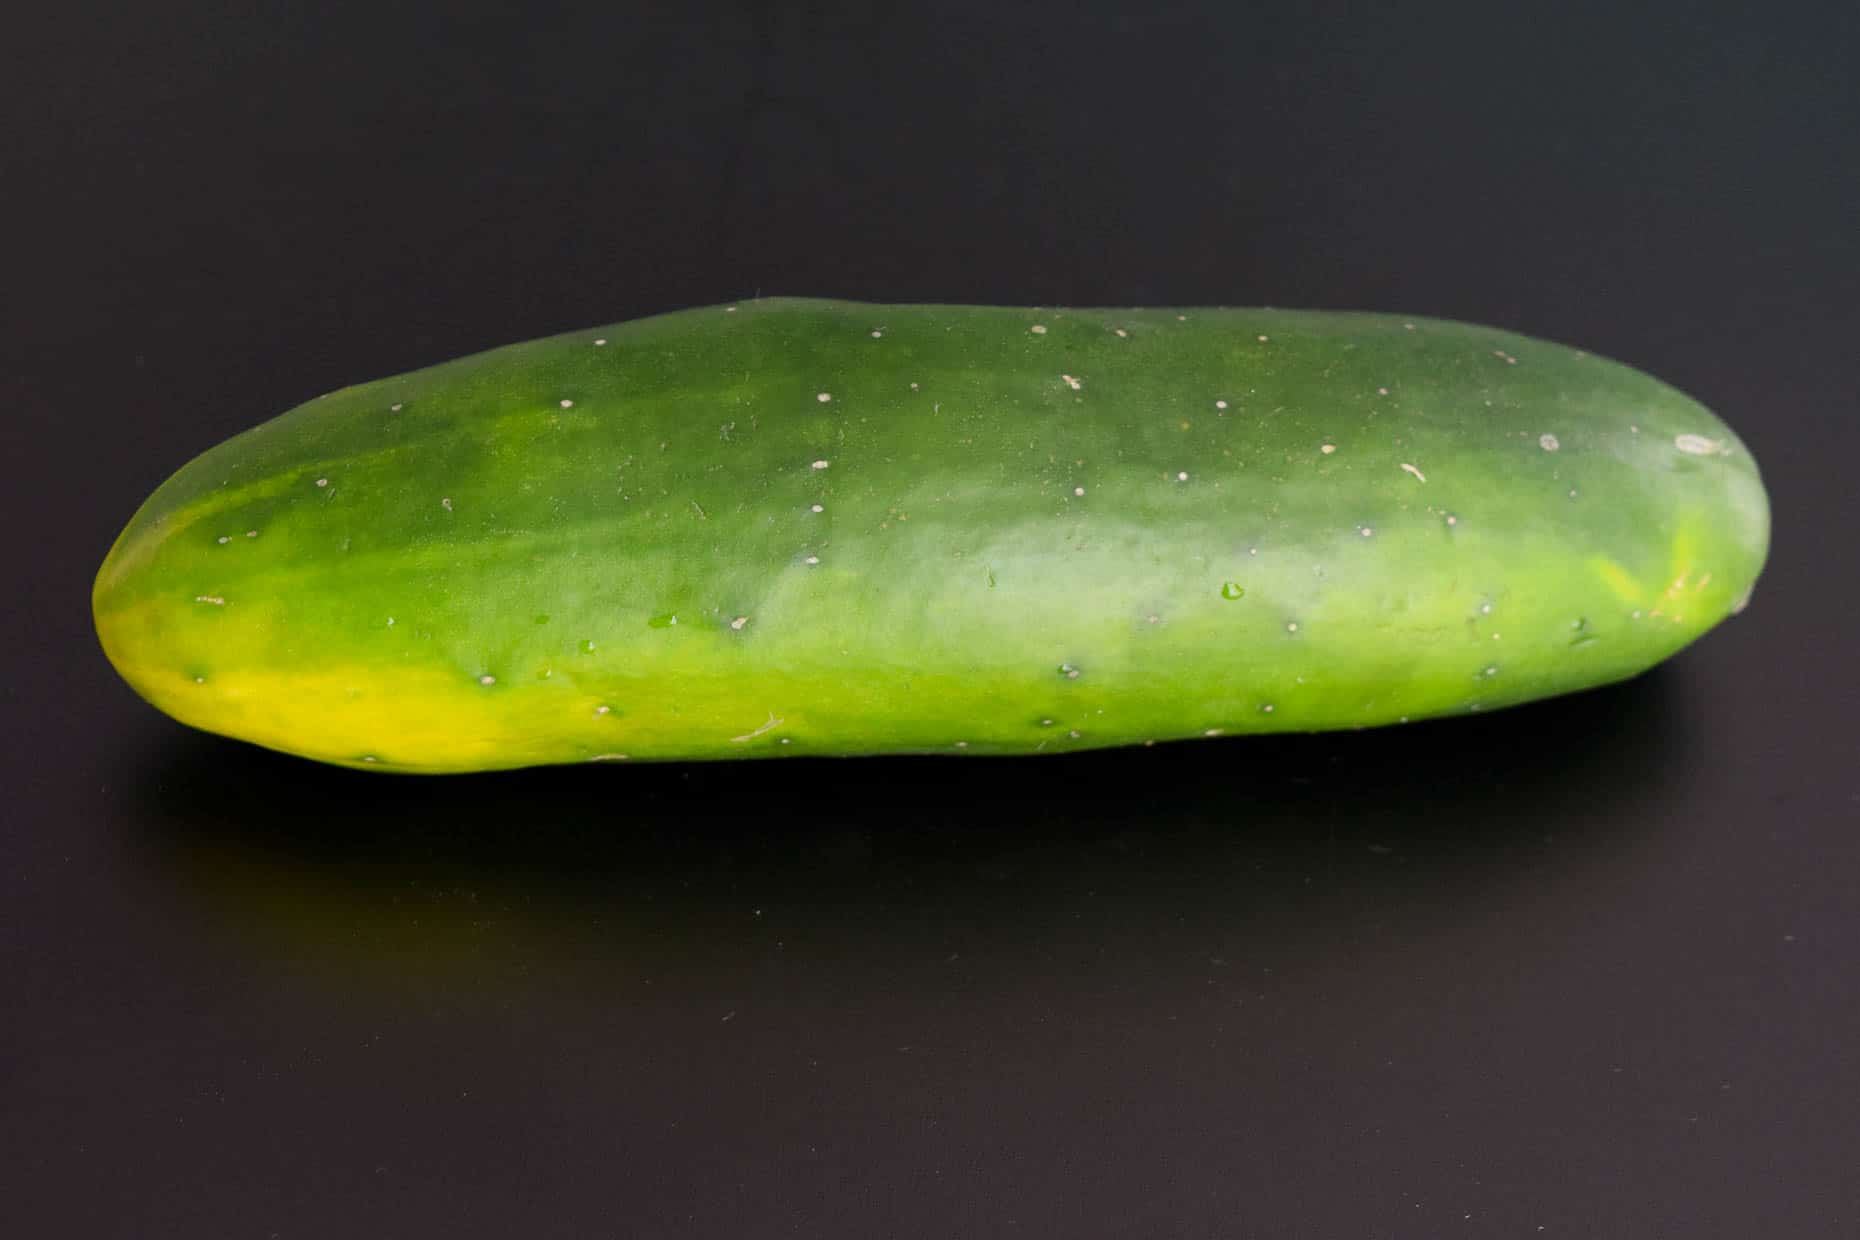 Cucumber on black background